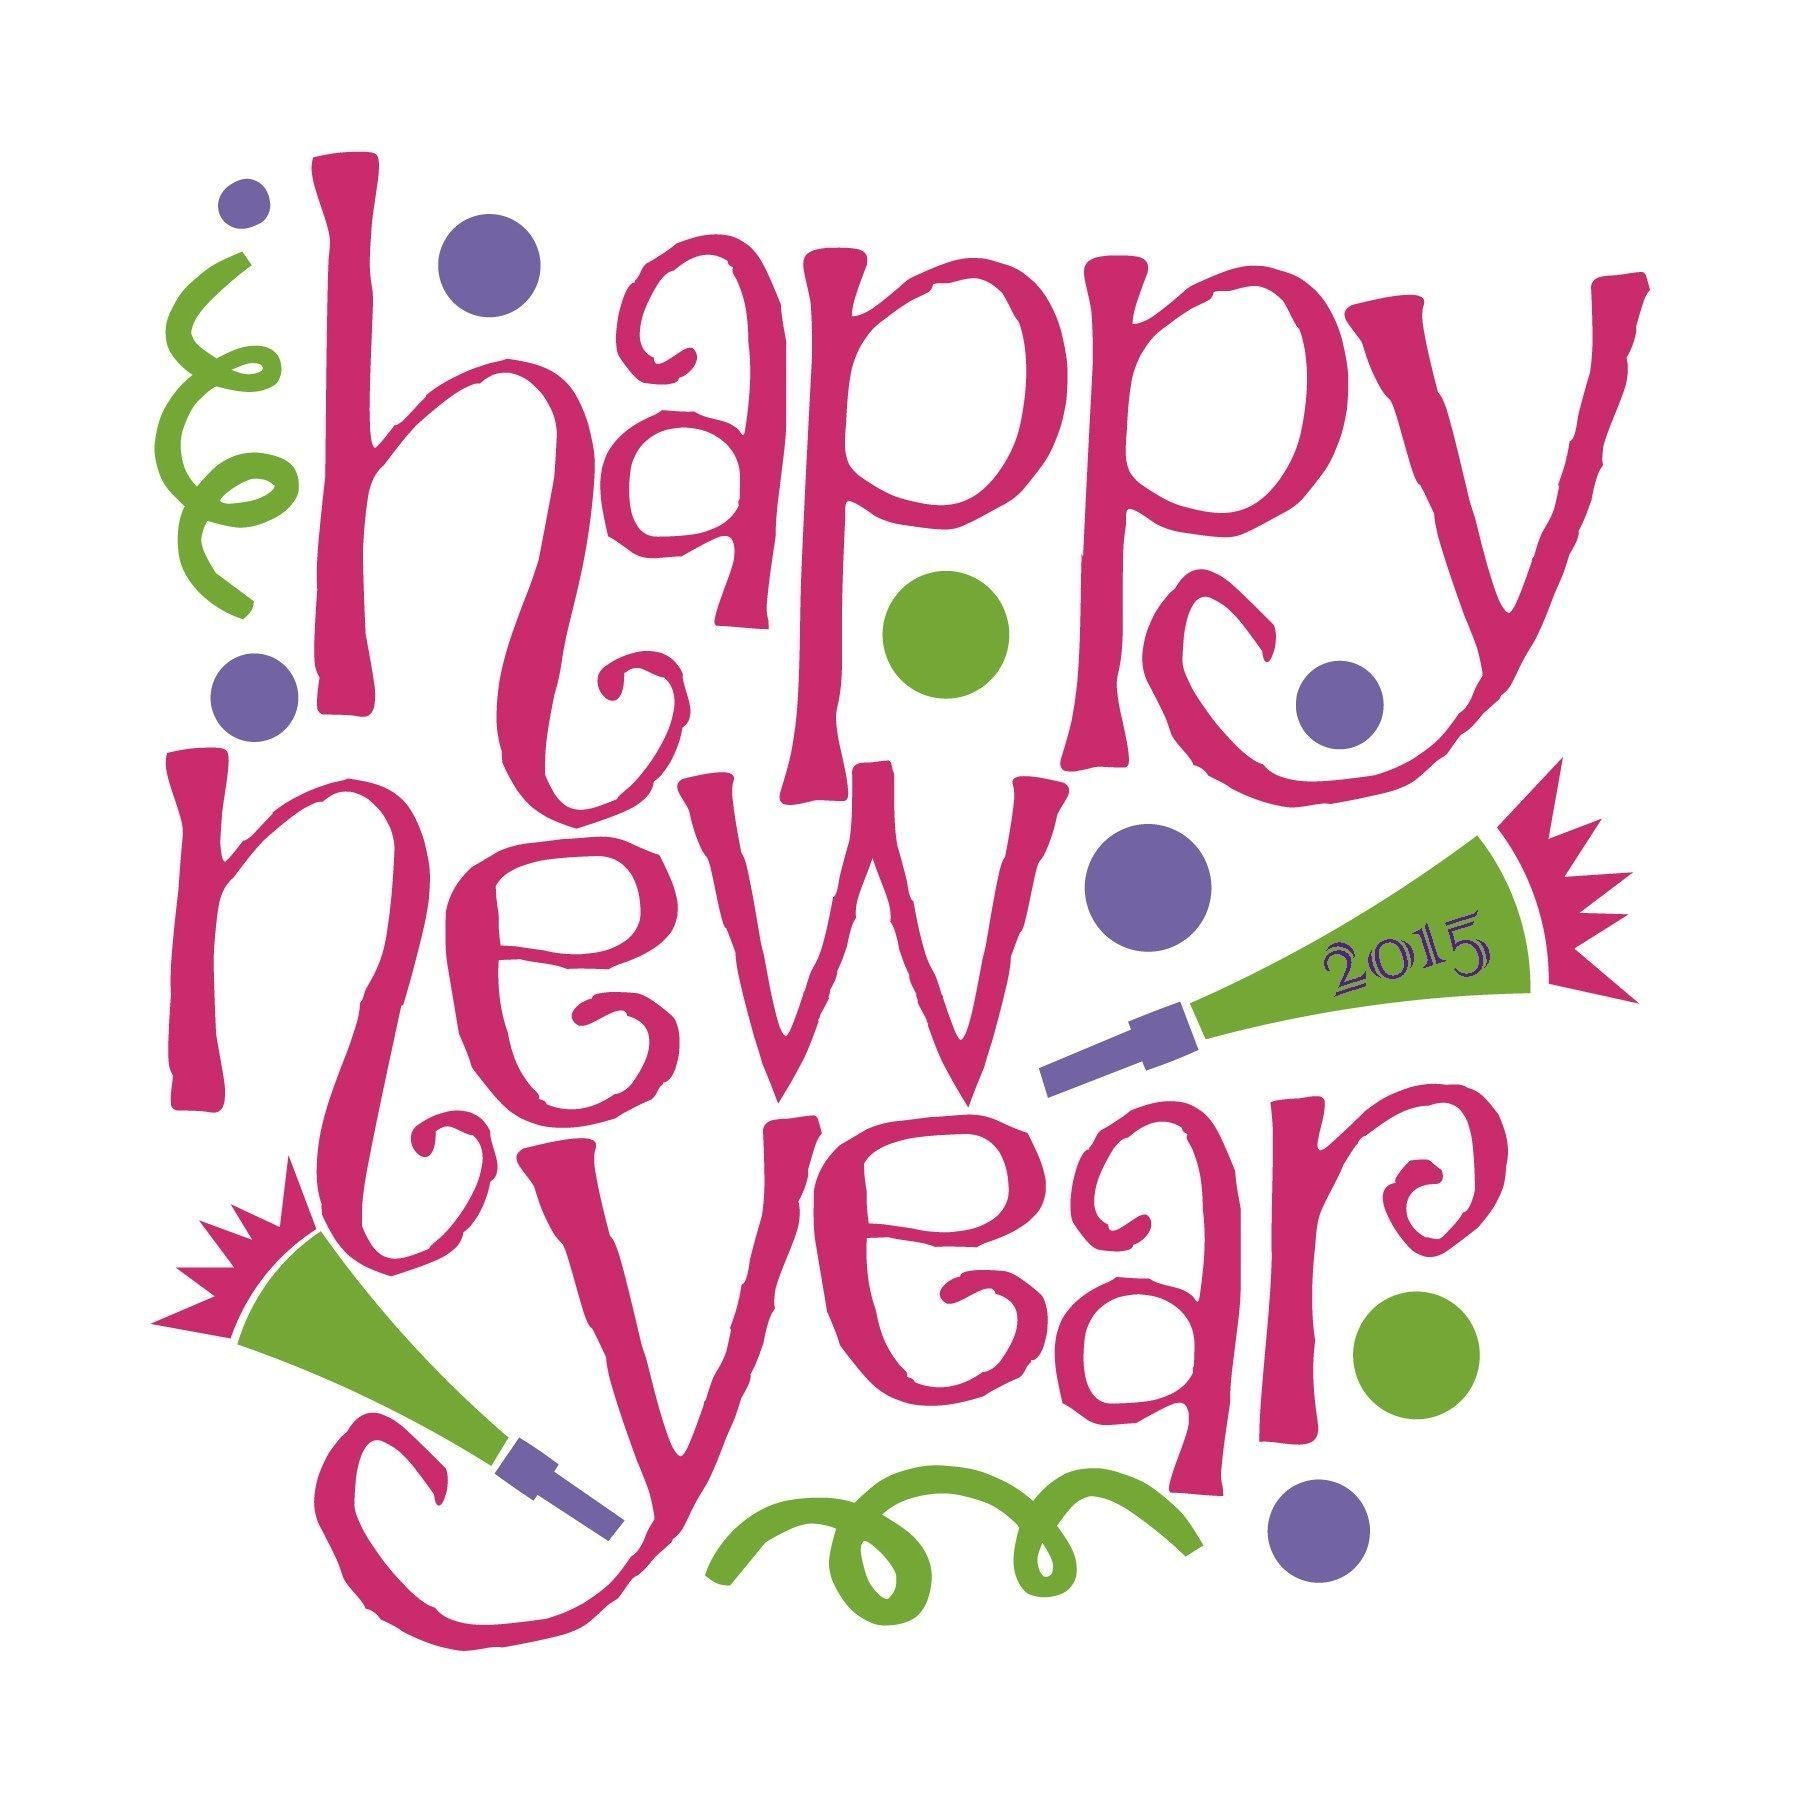 free clipart happy new year 2019 [ 1800 x 1793 Pixel ]